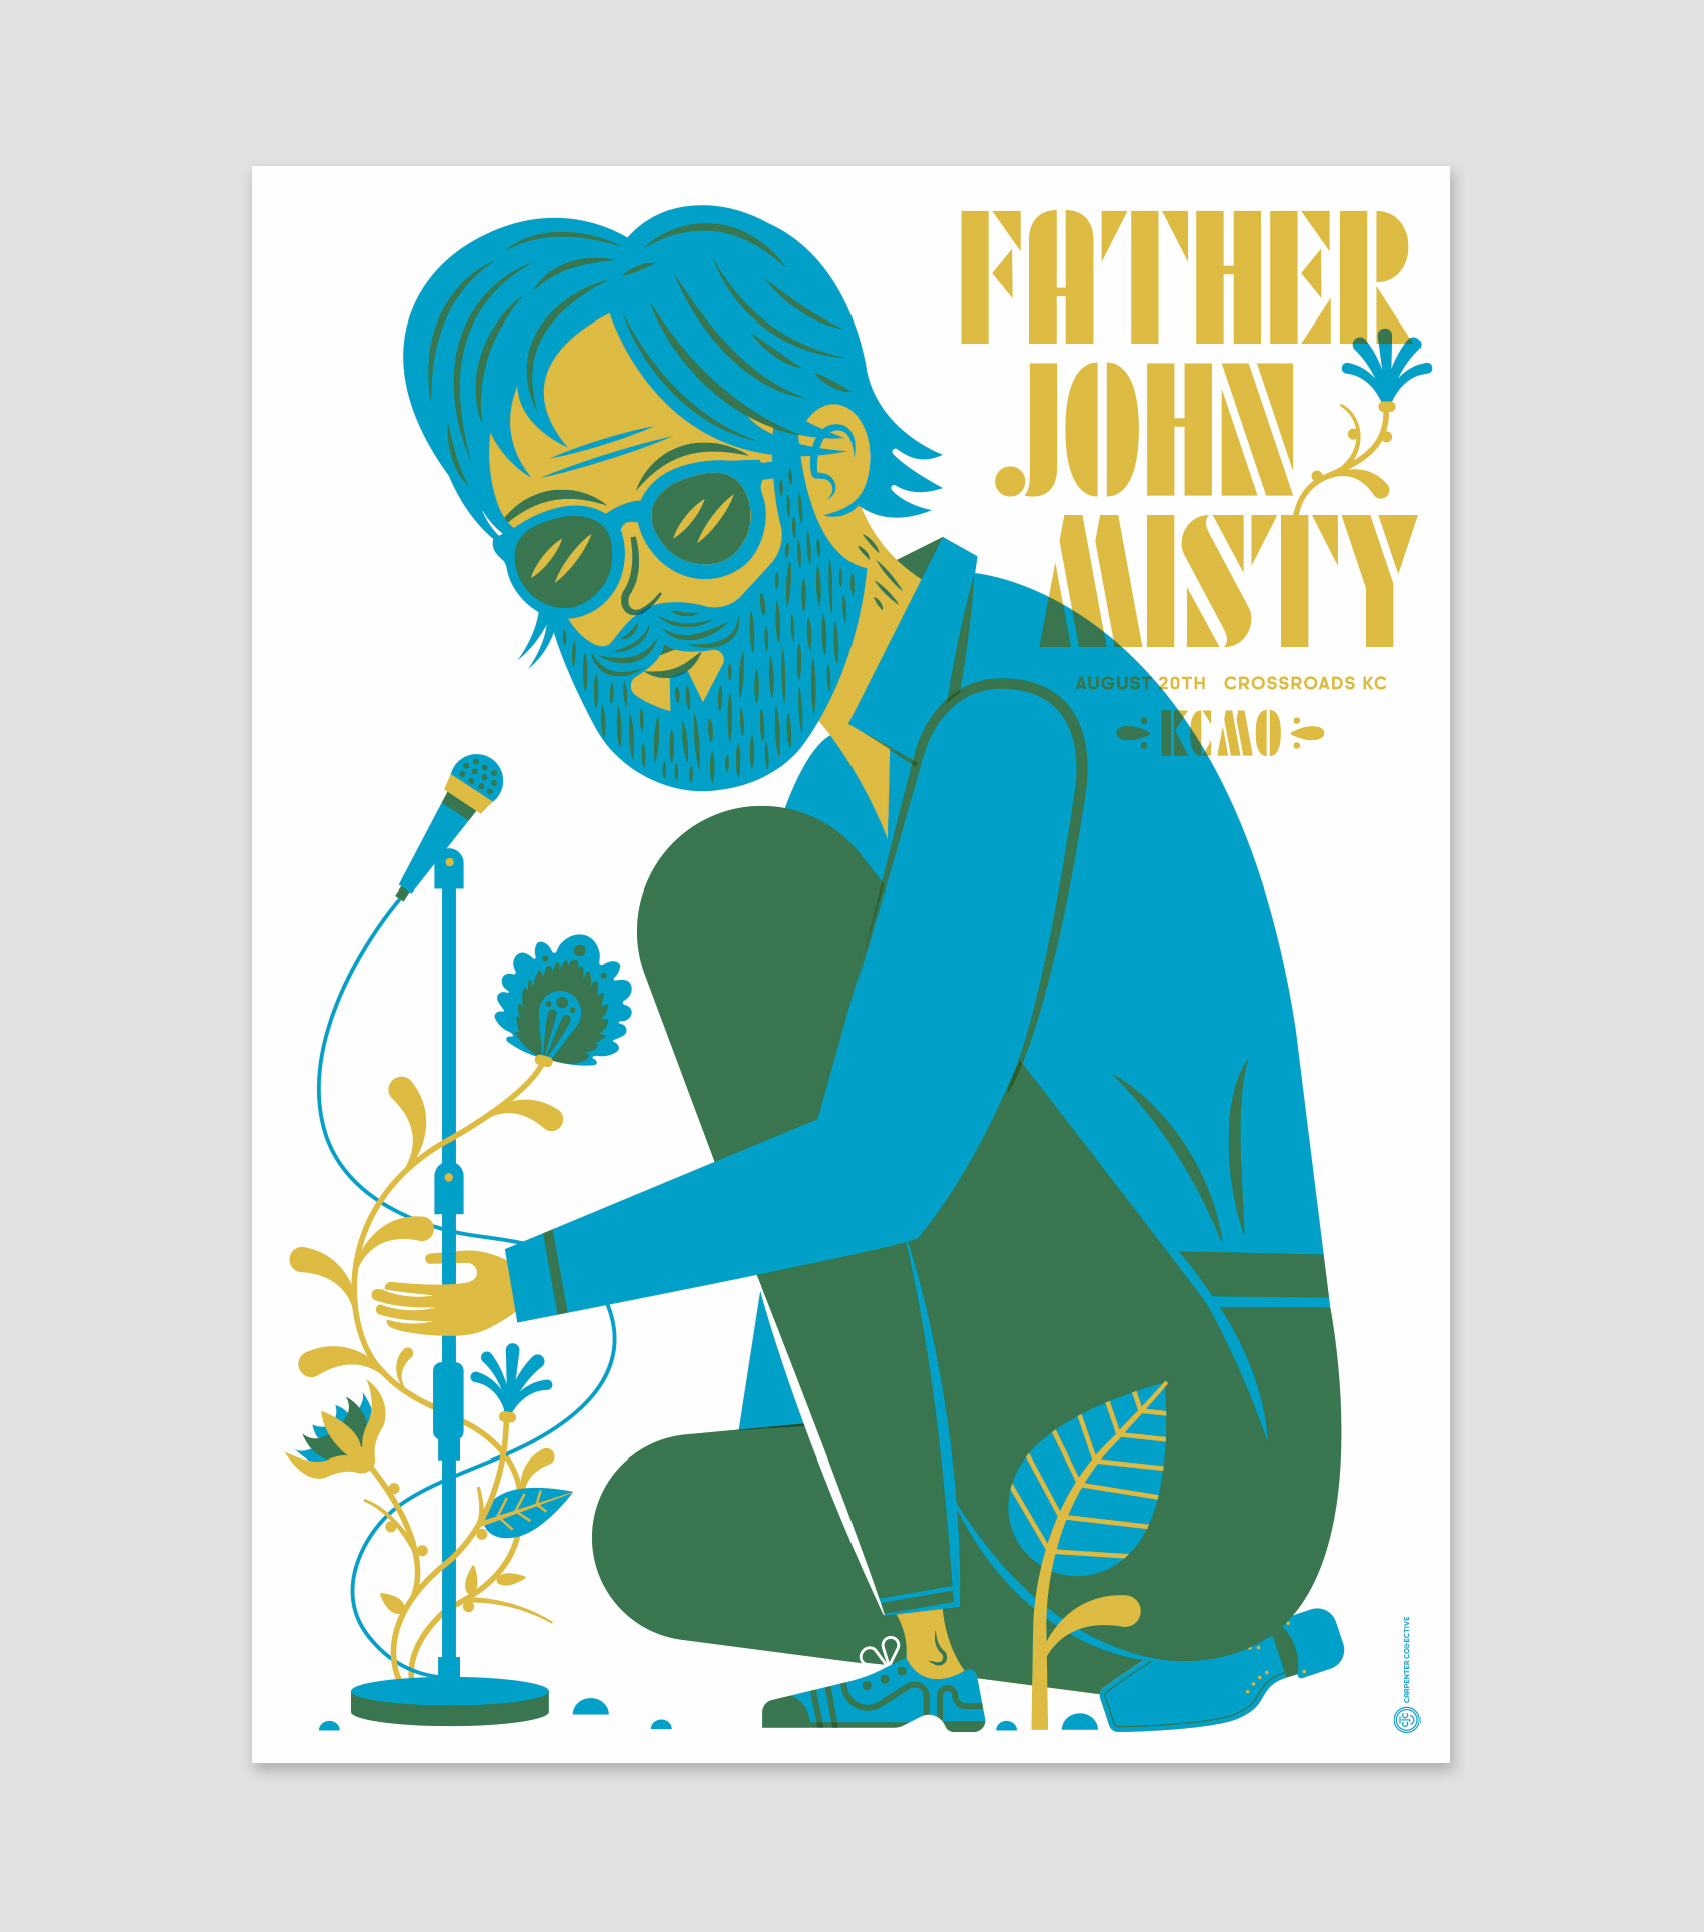 new poster for father john misty carpenter collective